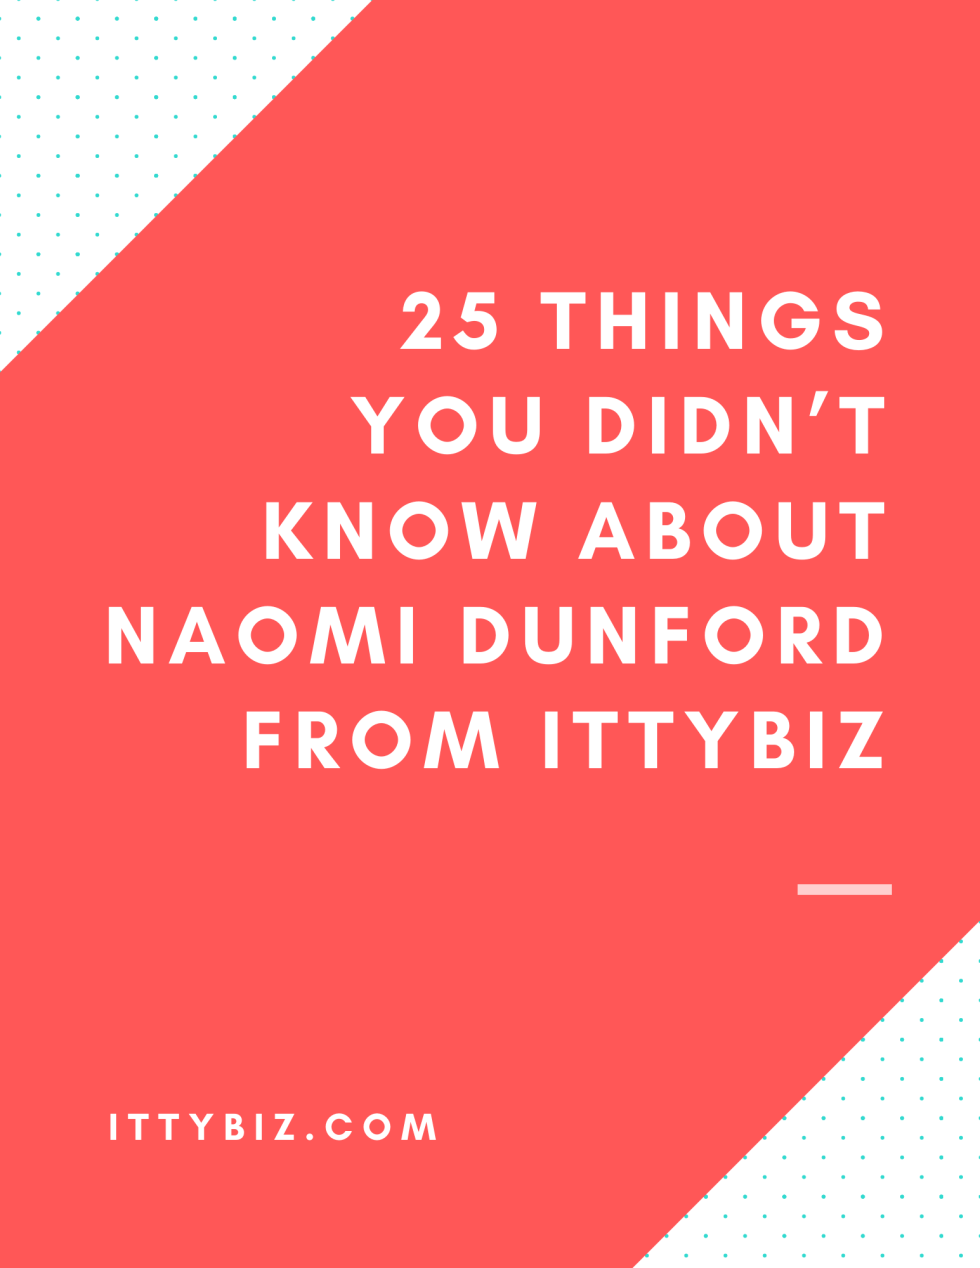 25 Things You Didn't Know About Naomi Dunford From IttyBiz